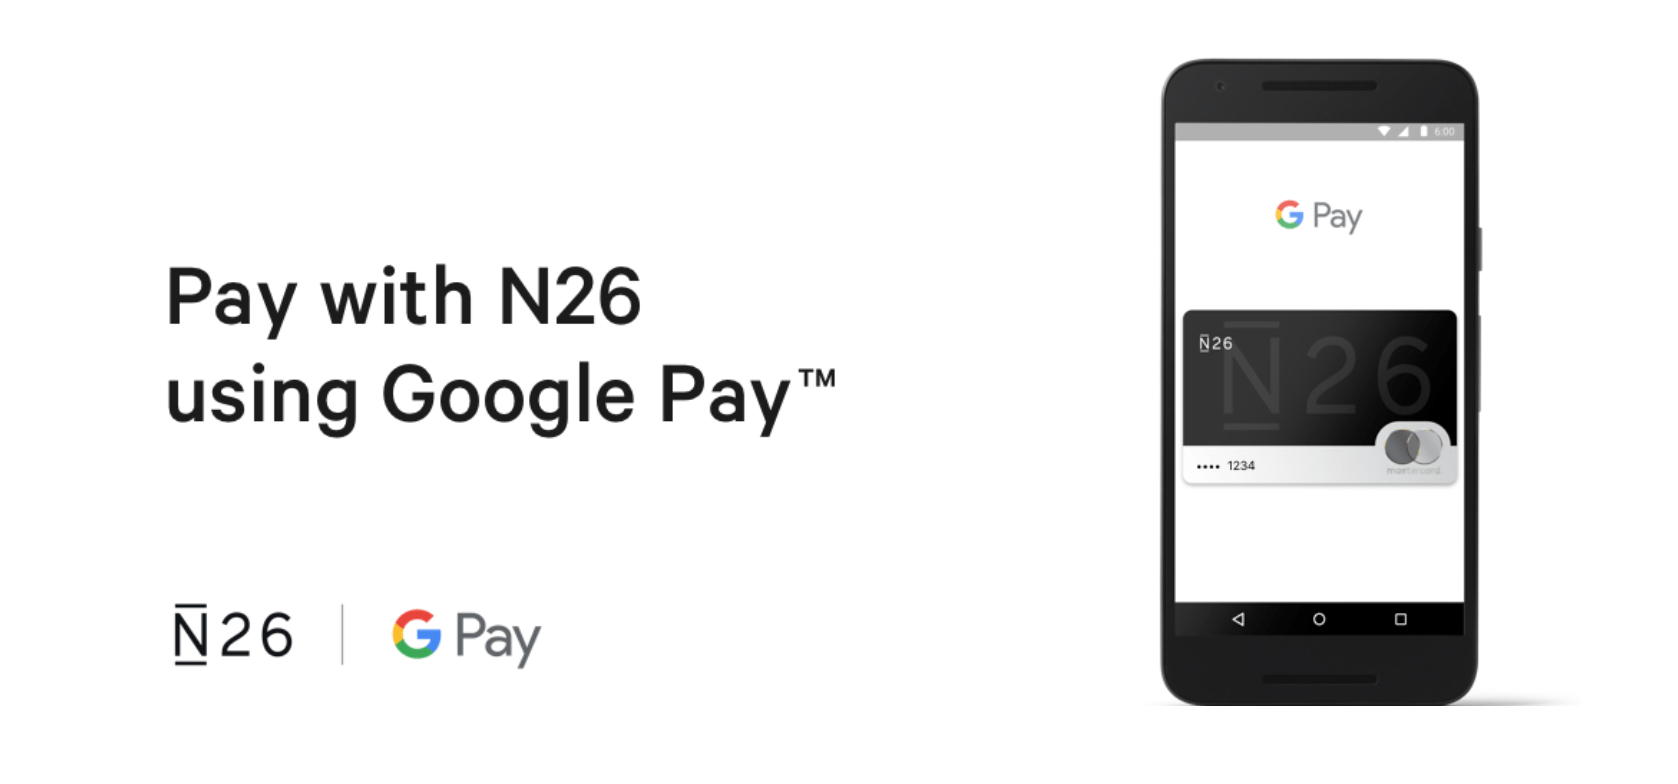 Google Pay supporte maintenant la banque en ligne N26